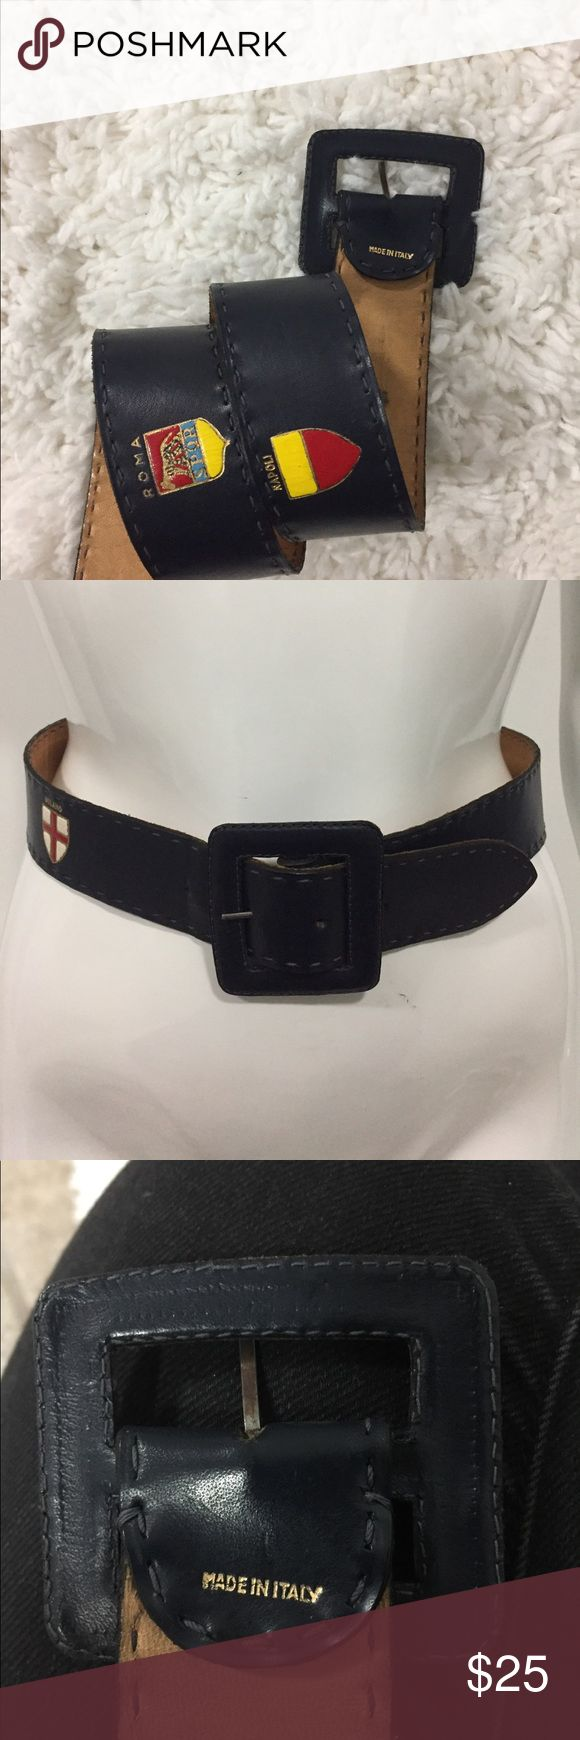 Vintage leather belt size small flags blue Vintage leather belt size small Made in Italy Roma Milano Firenze Napoli Accessories Belts